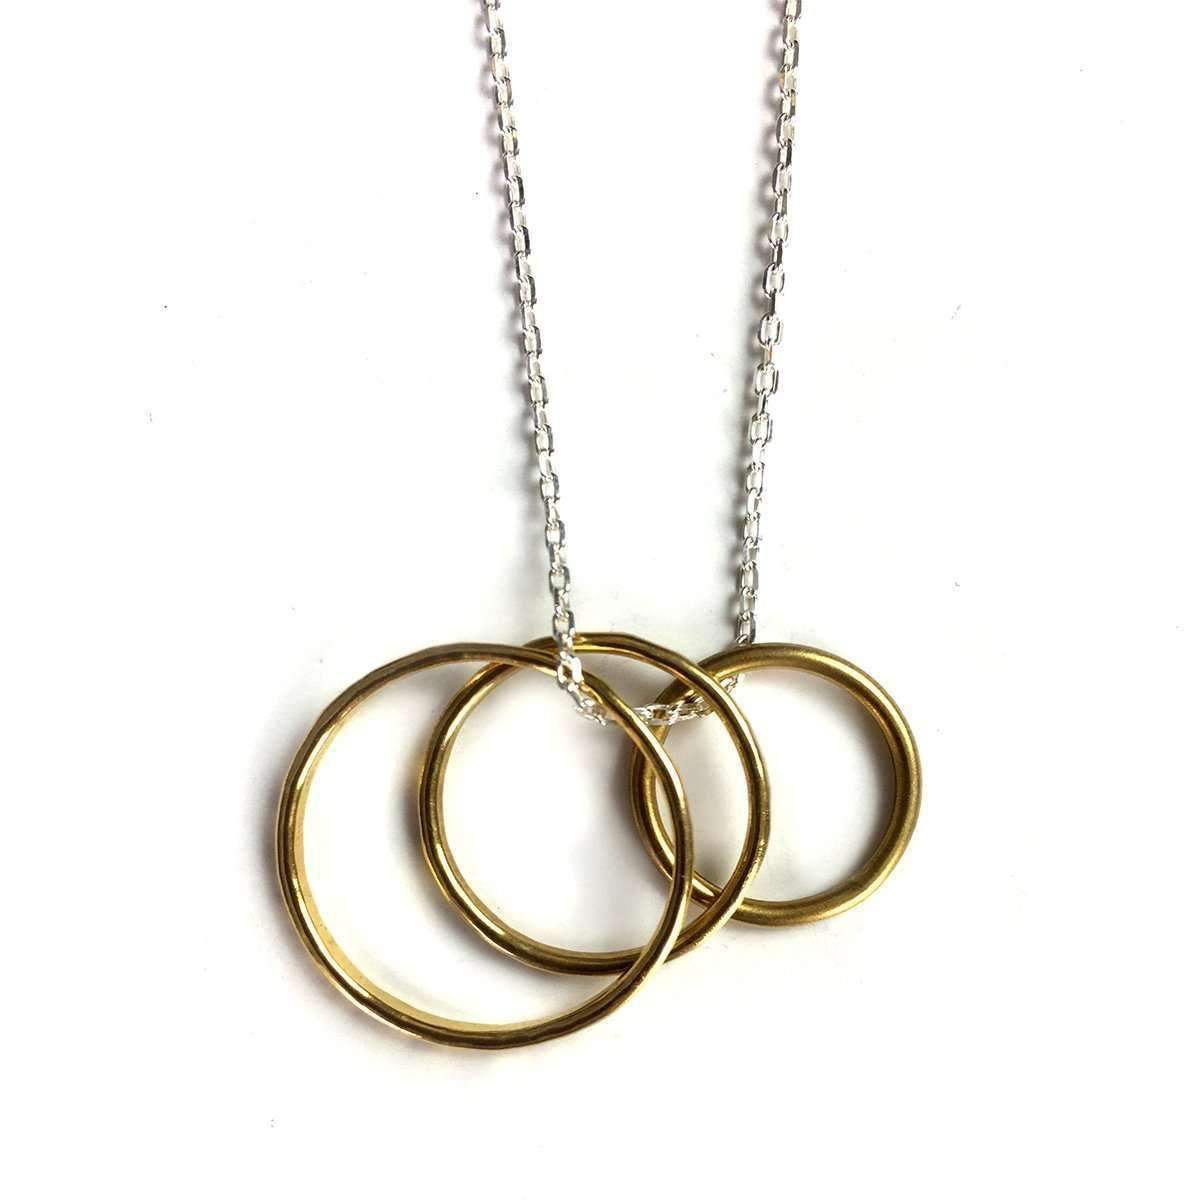 Fran Regan Jewellery Pendant Vermeil Single Loop On Silver Chain dZvdkupz